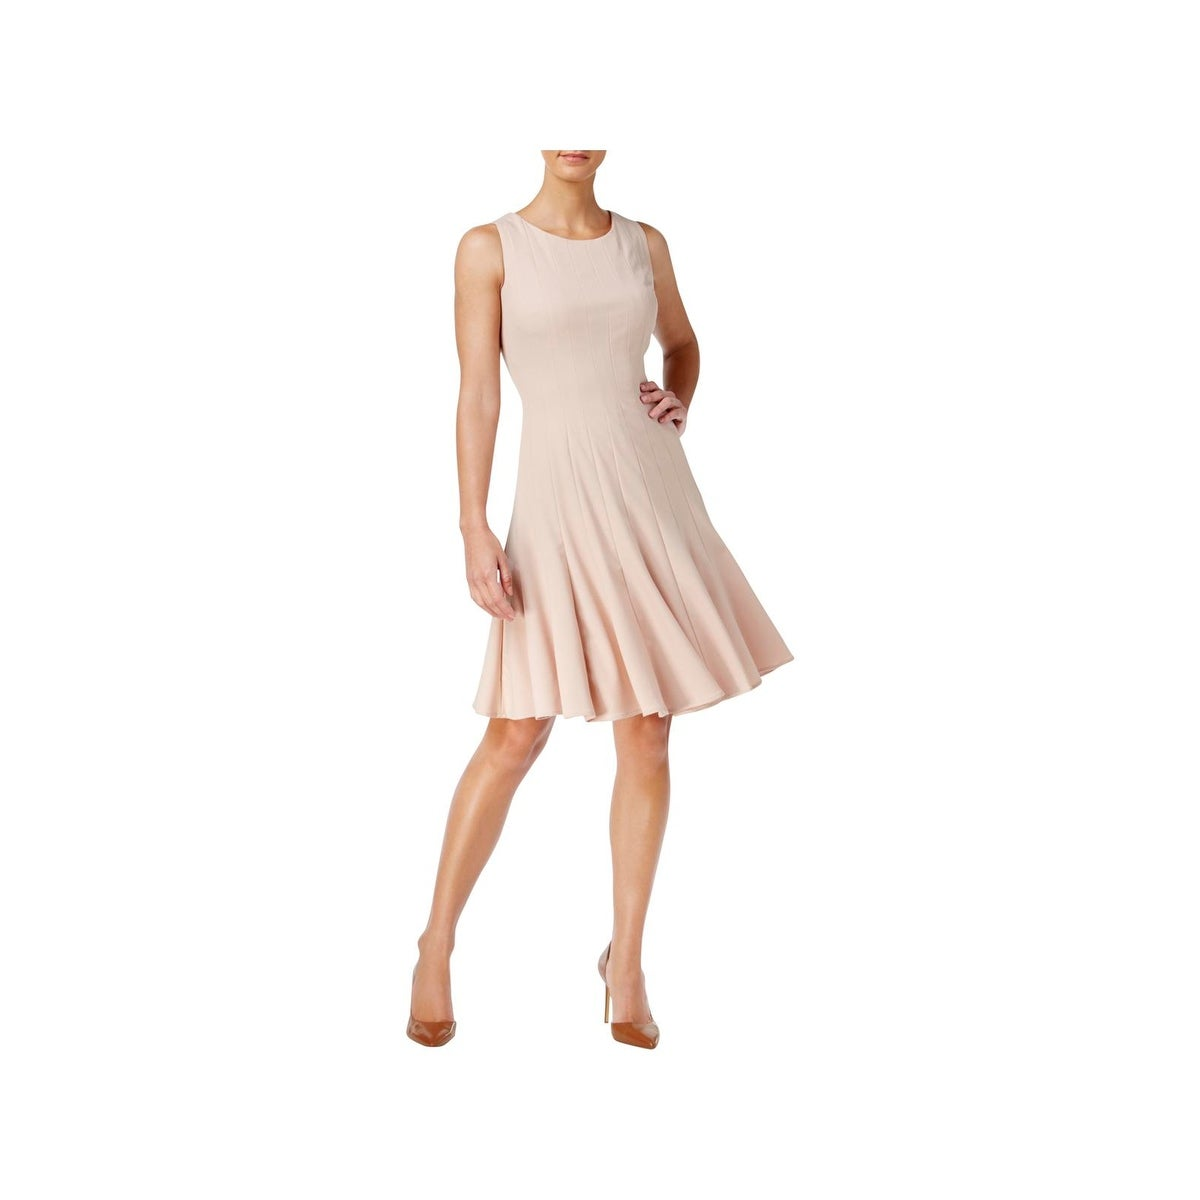 bcf15a17ac2f9 Calvin Klein Dresses | Find Great Women's Clothing Deals Shopping at  Overstock